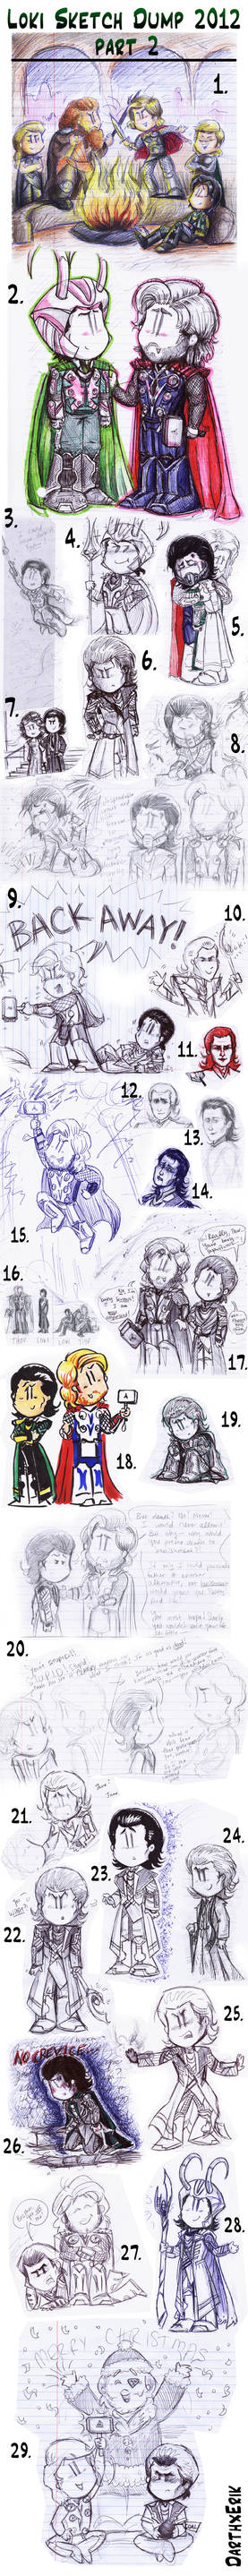 Loki Sketch Dump 2012 part 2